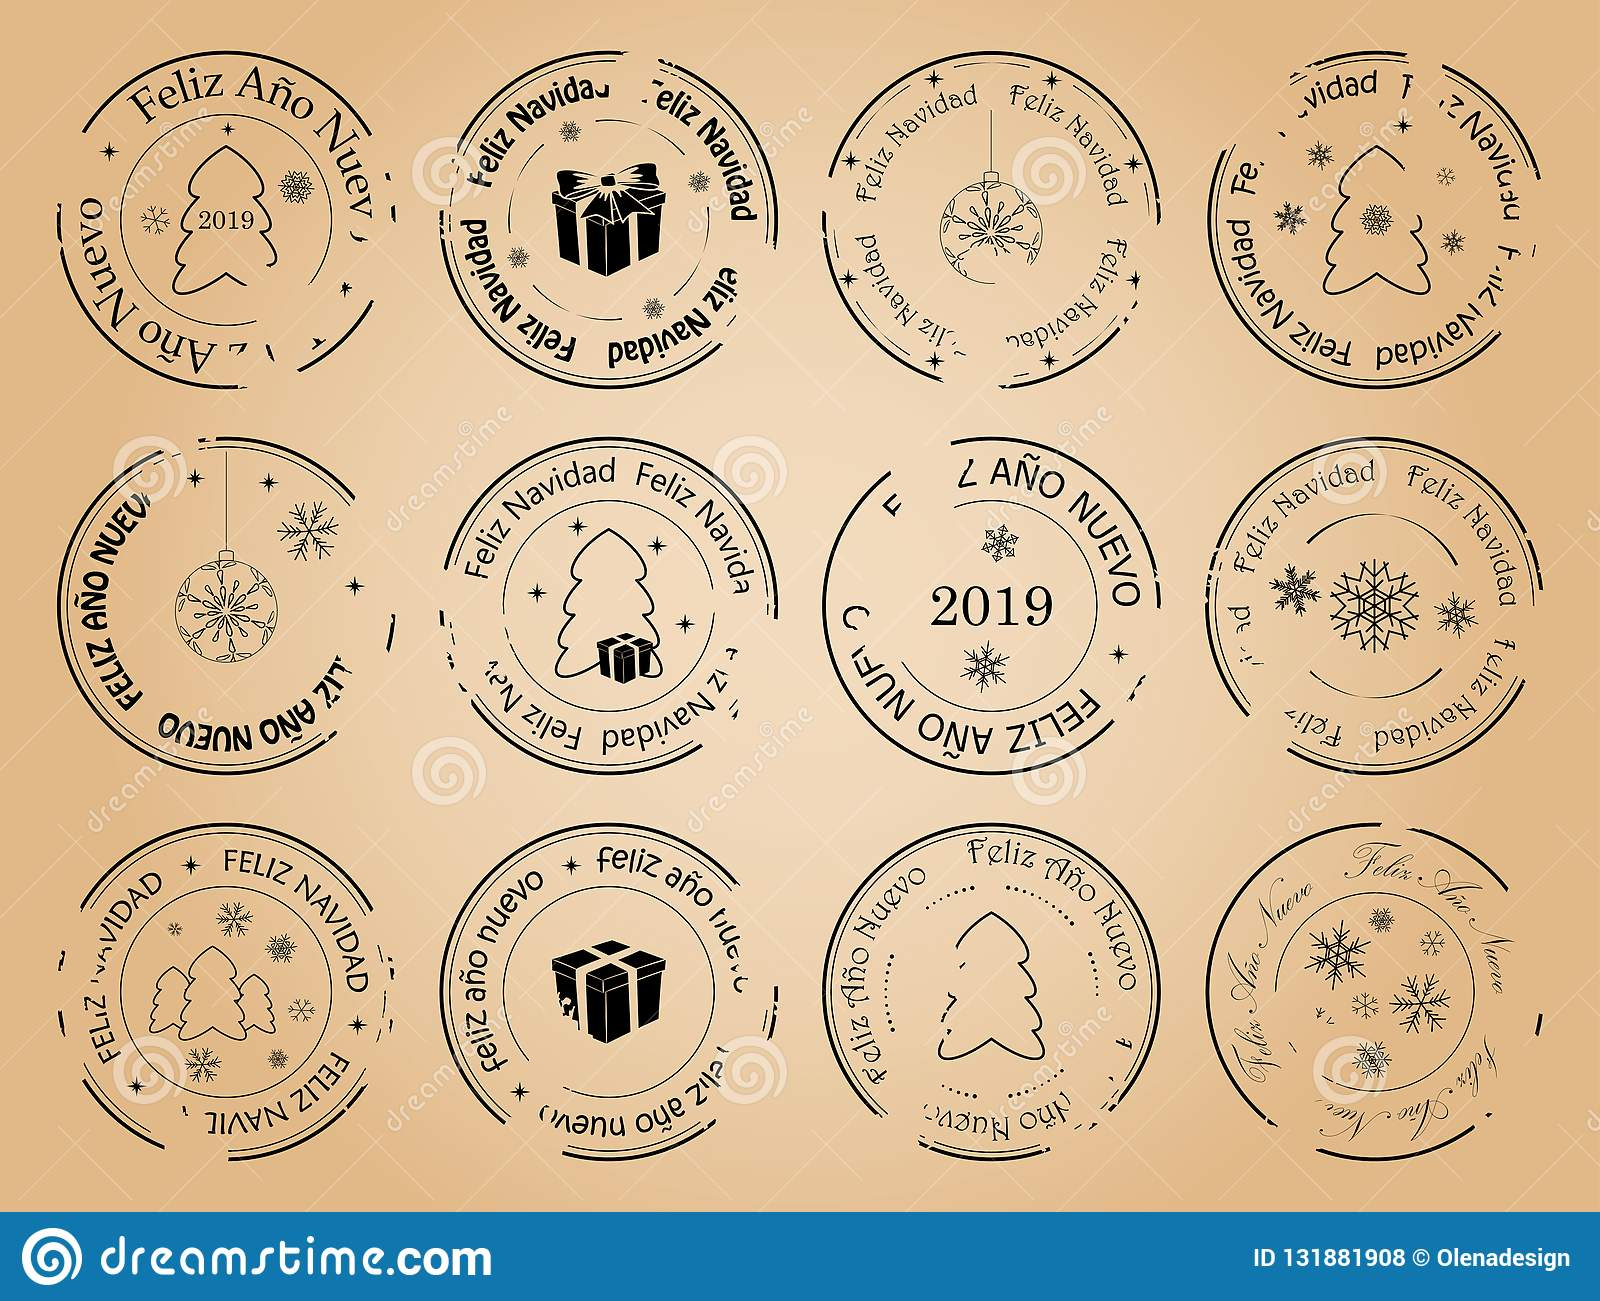 2019 Christmas Stamps.Happy New Year And Merry Christmas Vintage Vector Postage